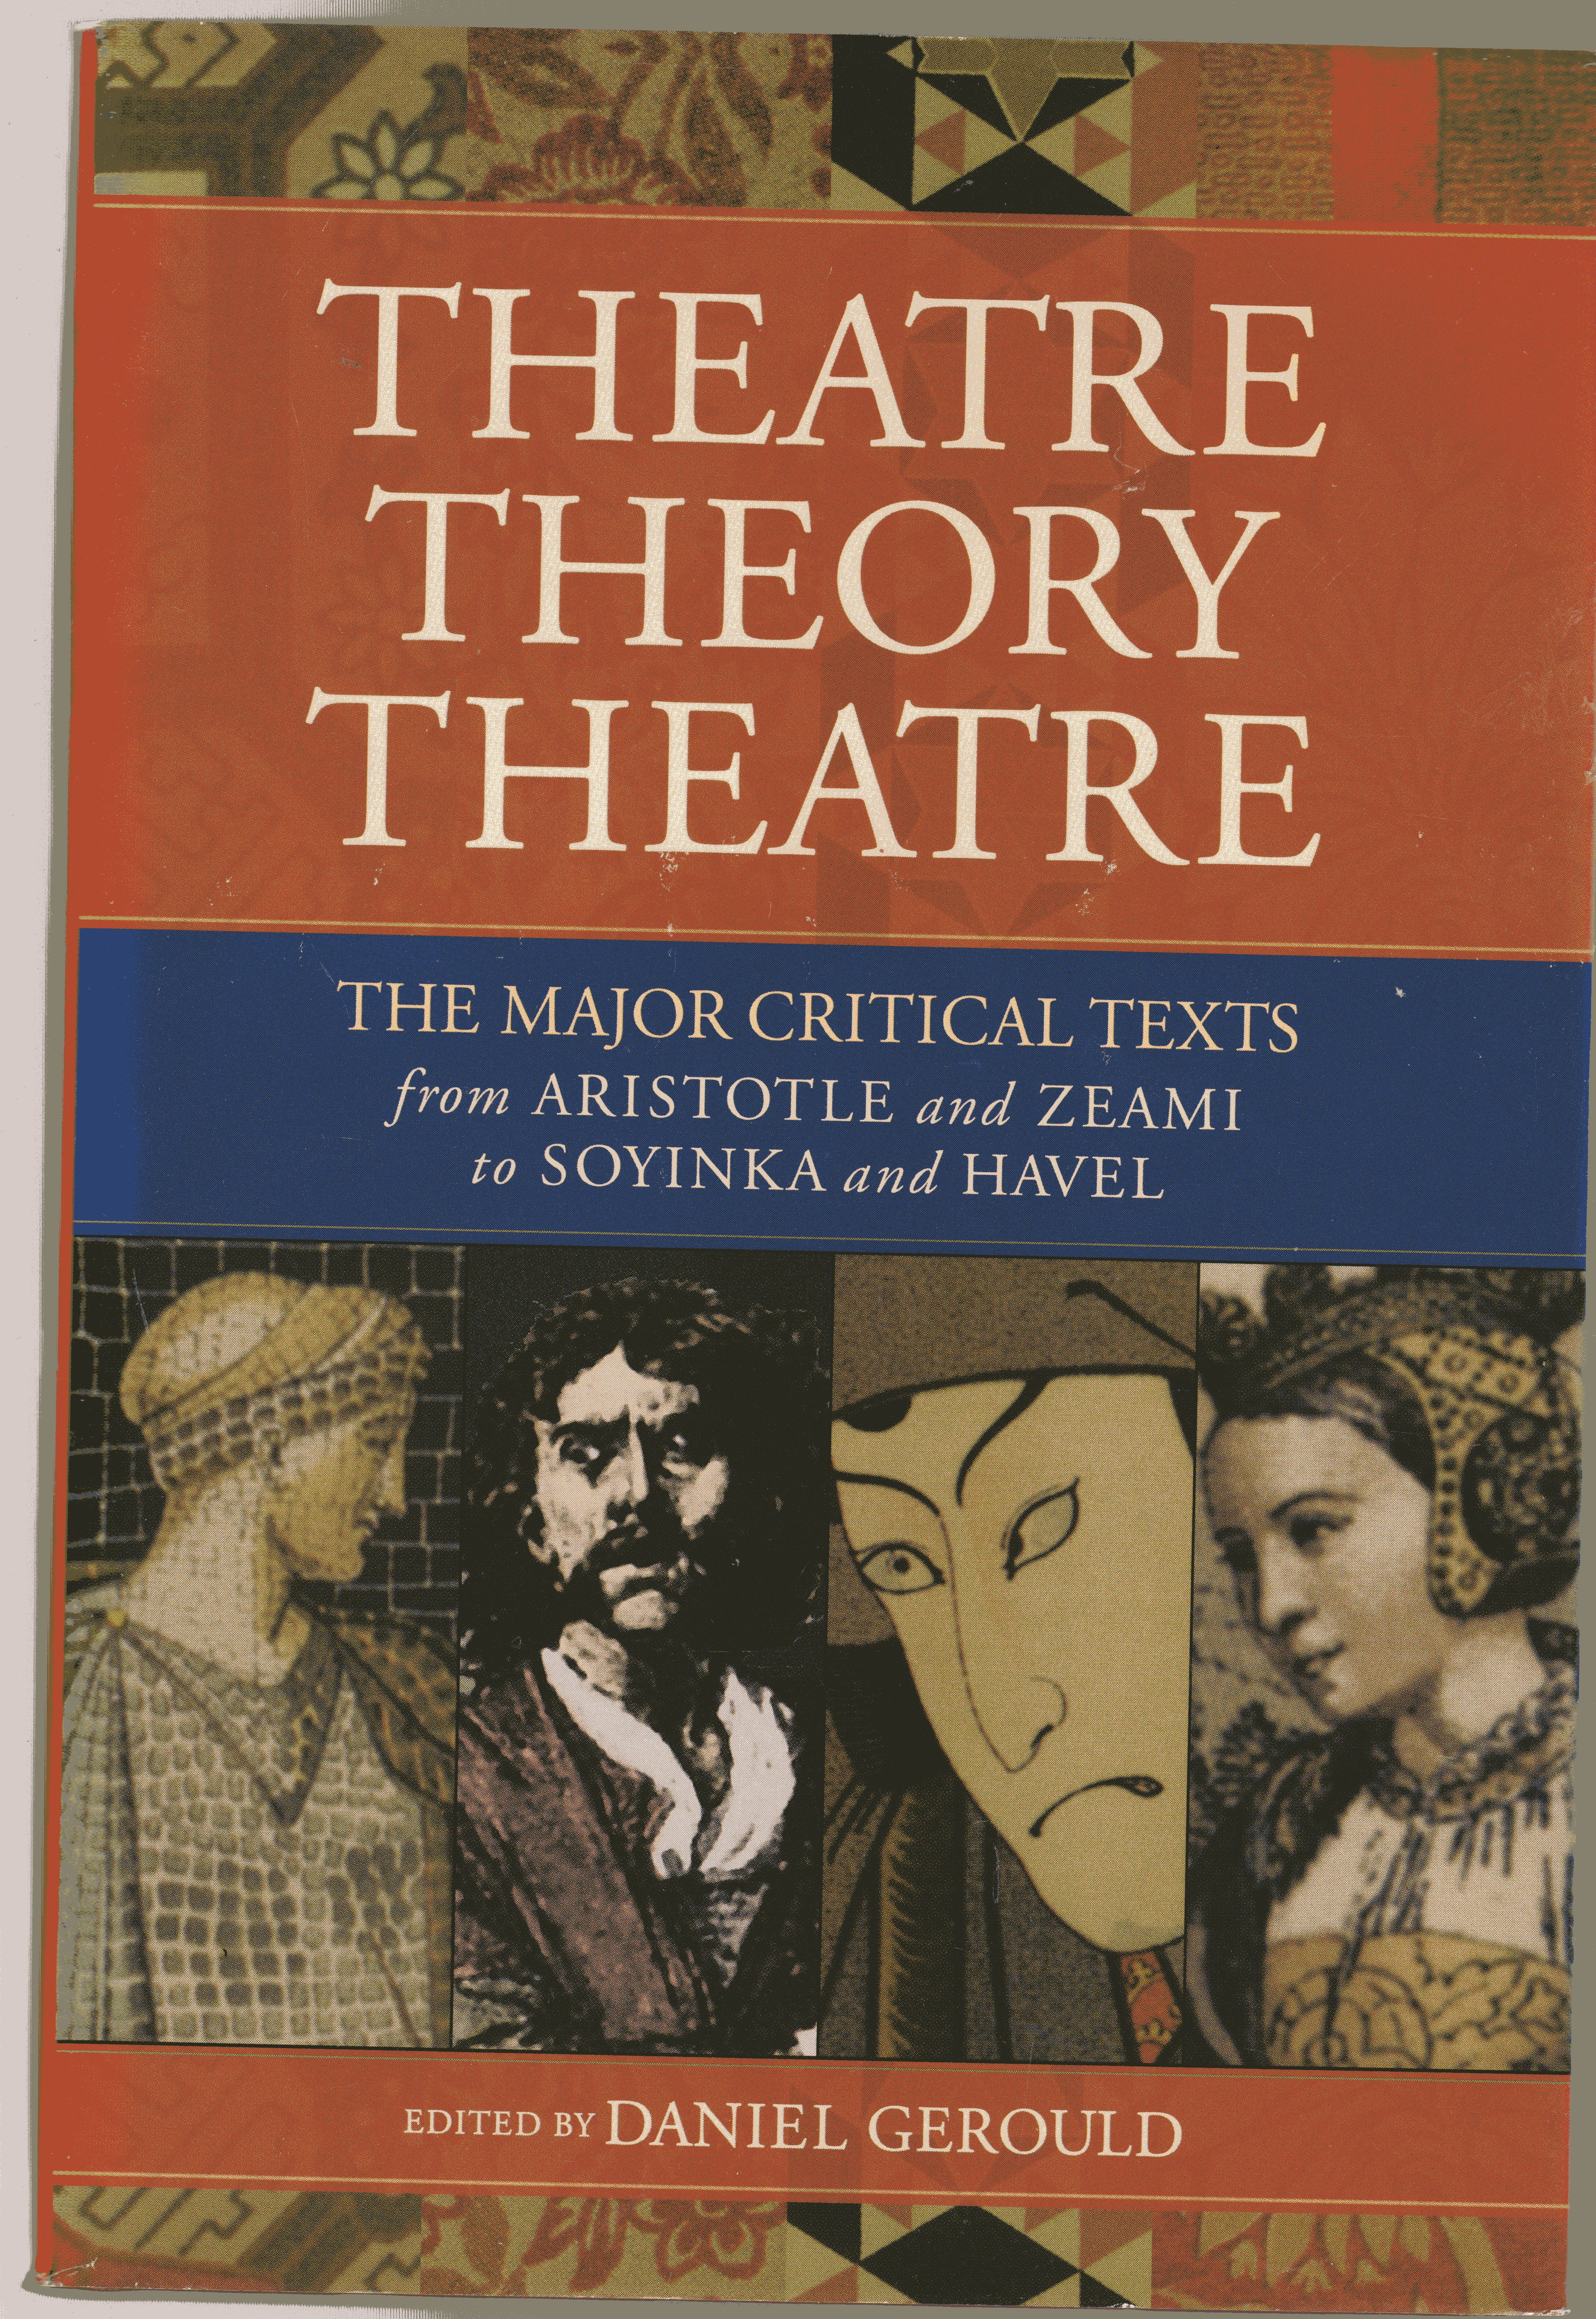 Image for Theatre/Theory/Theatre : The Major Critical Texts from Aristotle and Zeami to Soyinka and Hevel